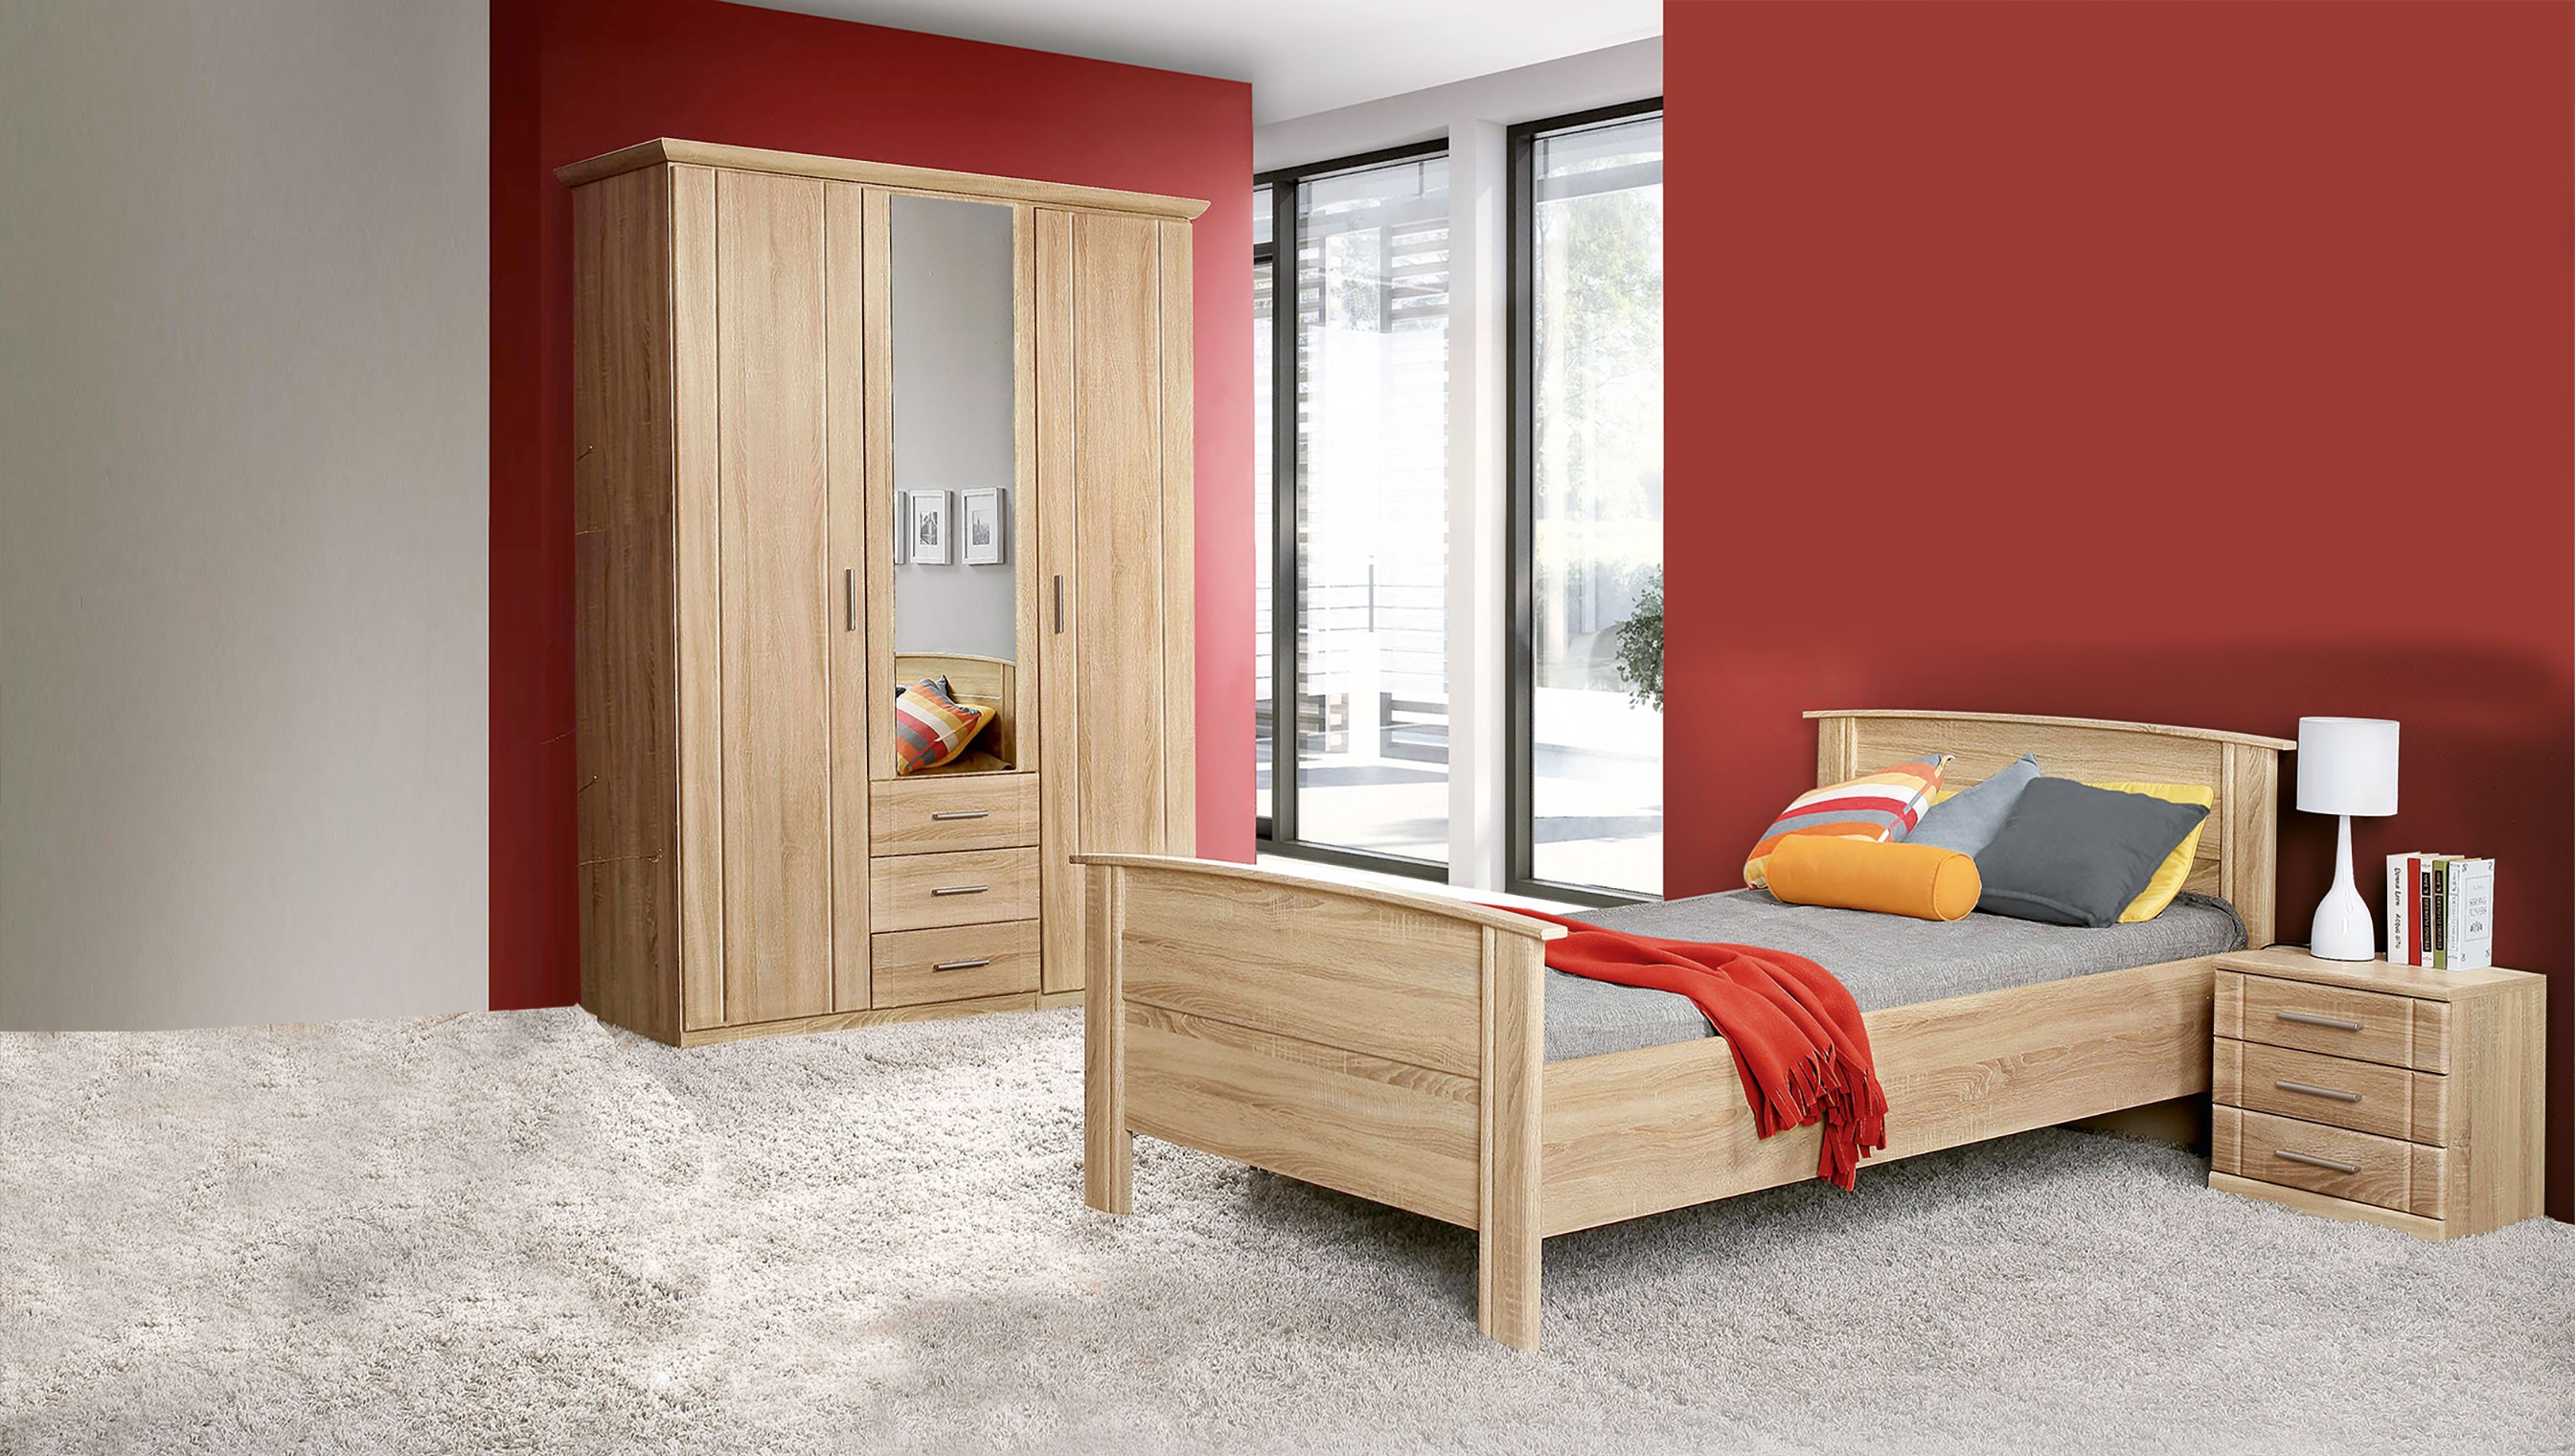 sonoma eiche bett 140x200 bett pocket sonoma eiche von demeyere kindergartenhausdergartenzwerge. Black Bedroom Furniture Sets. Home Design Ideas